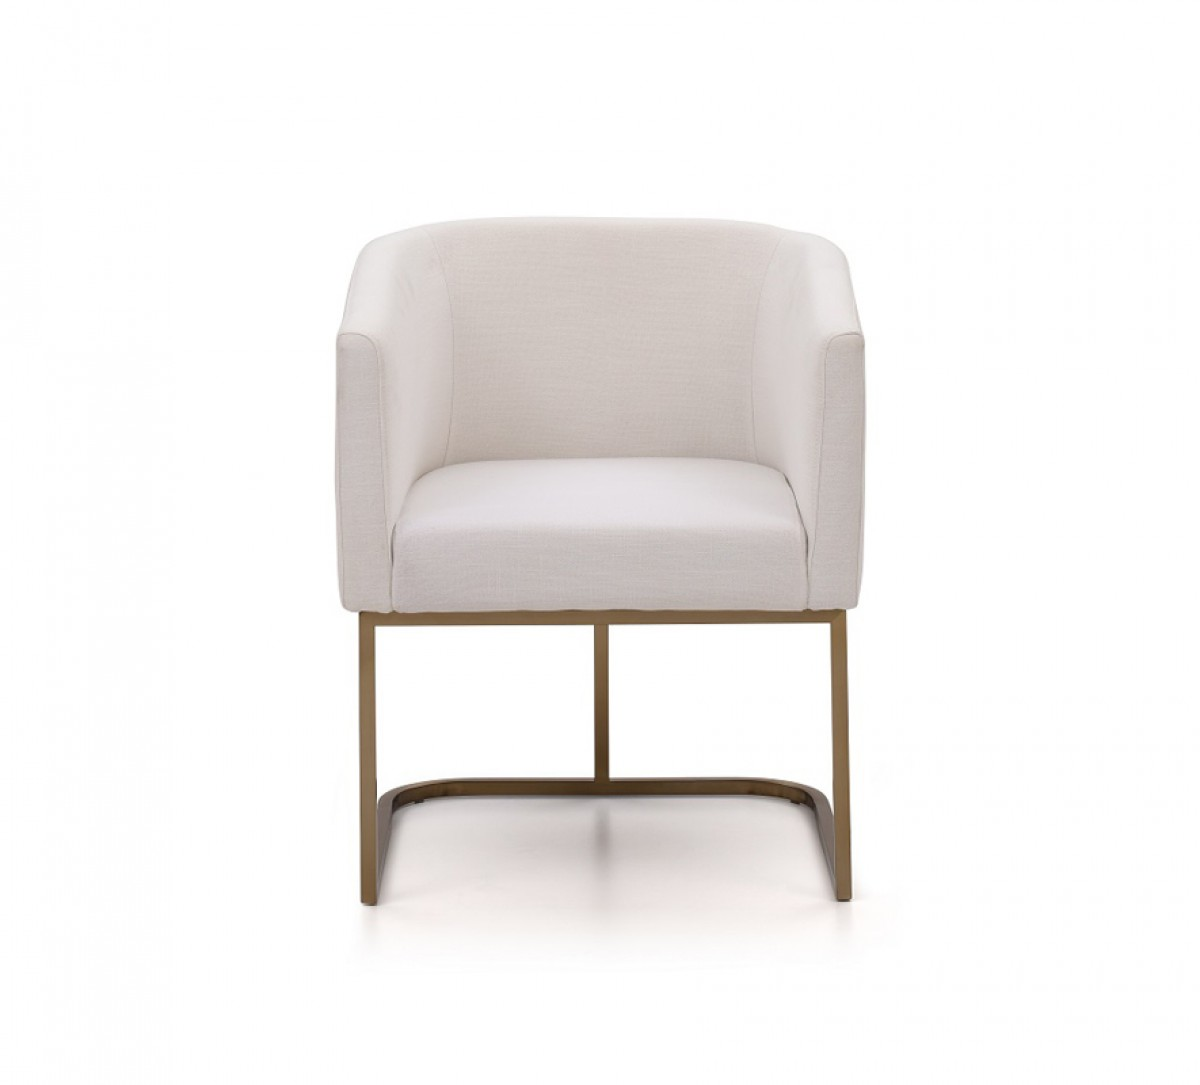 Modern Dining Chairs Cheap: Modrest Yukon Modern White Fabric And Antique Brass Dining